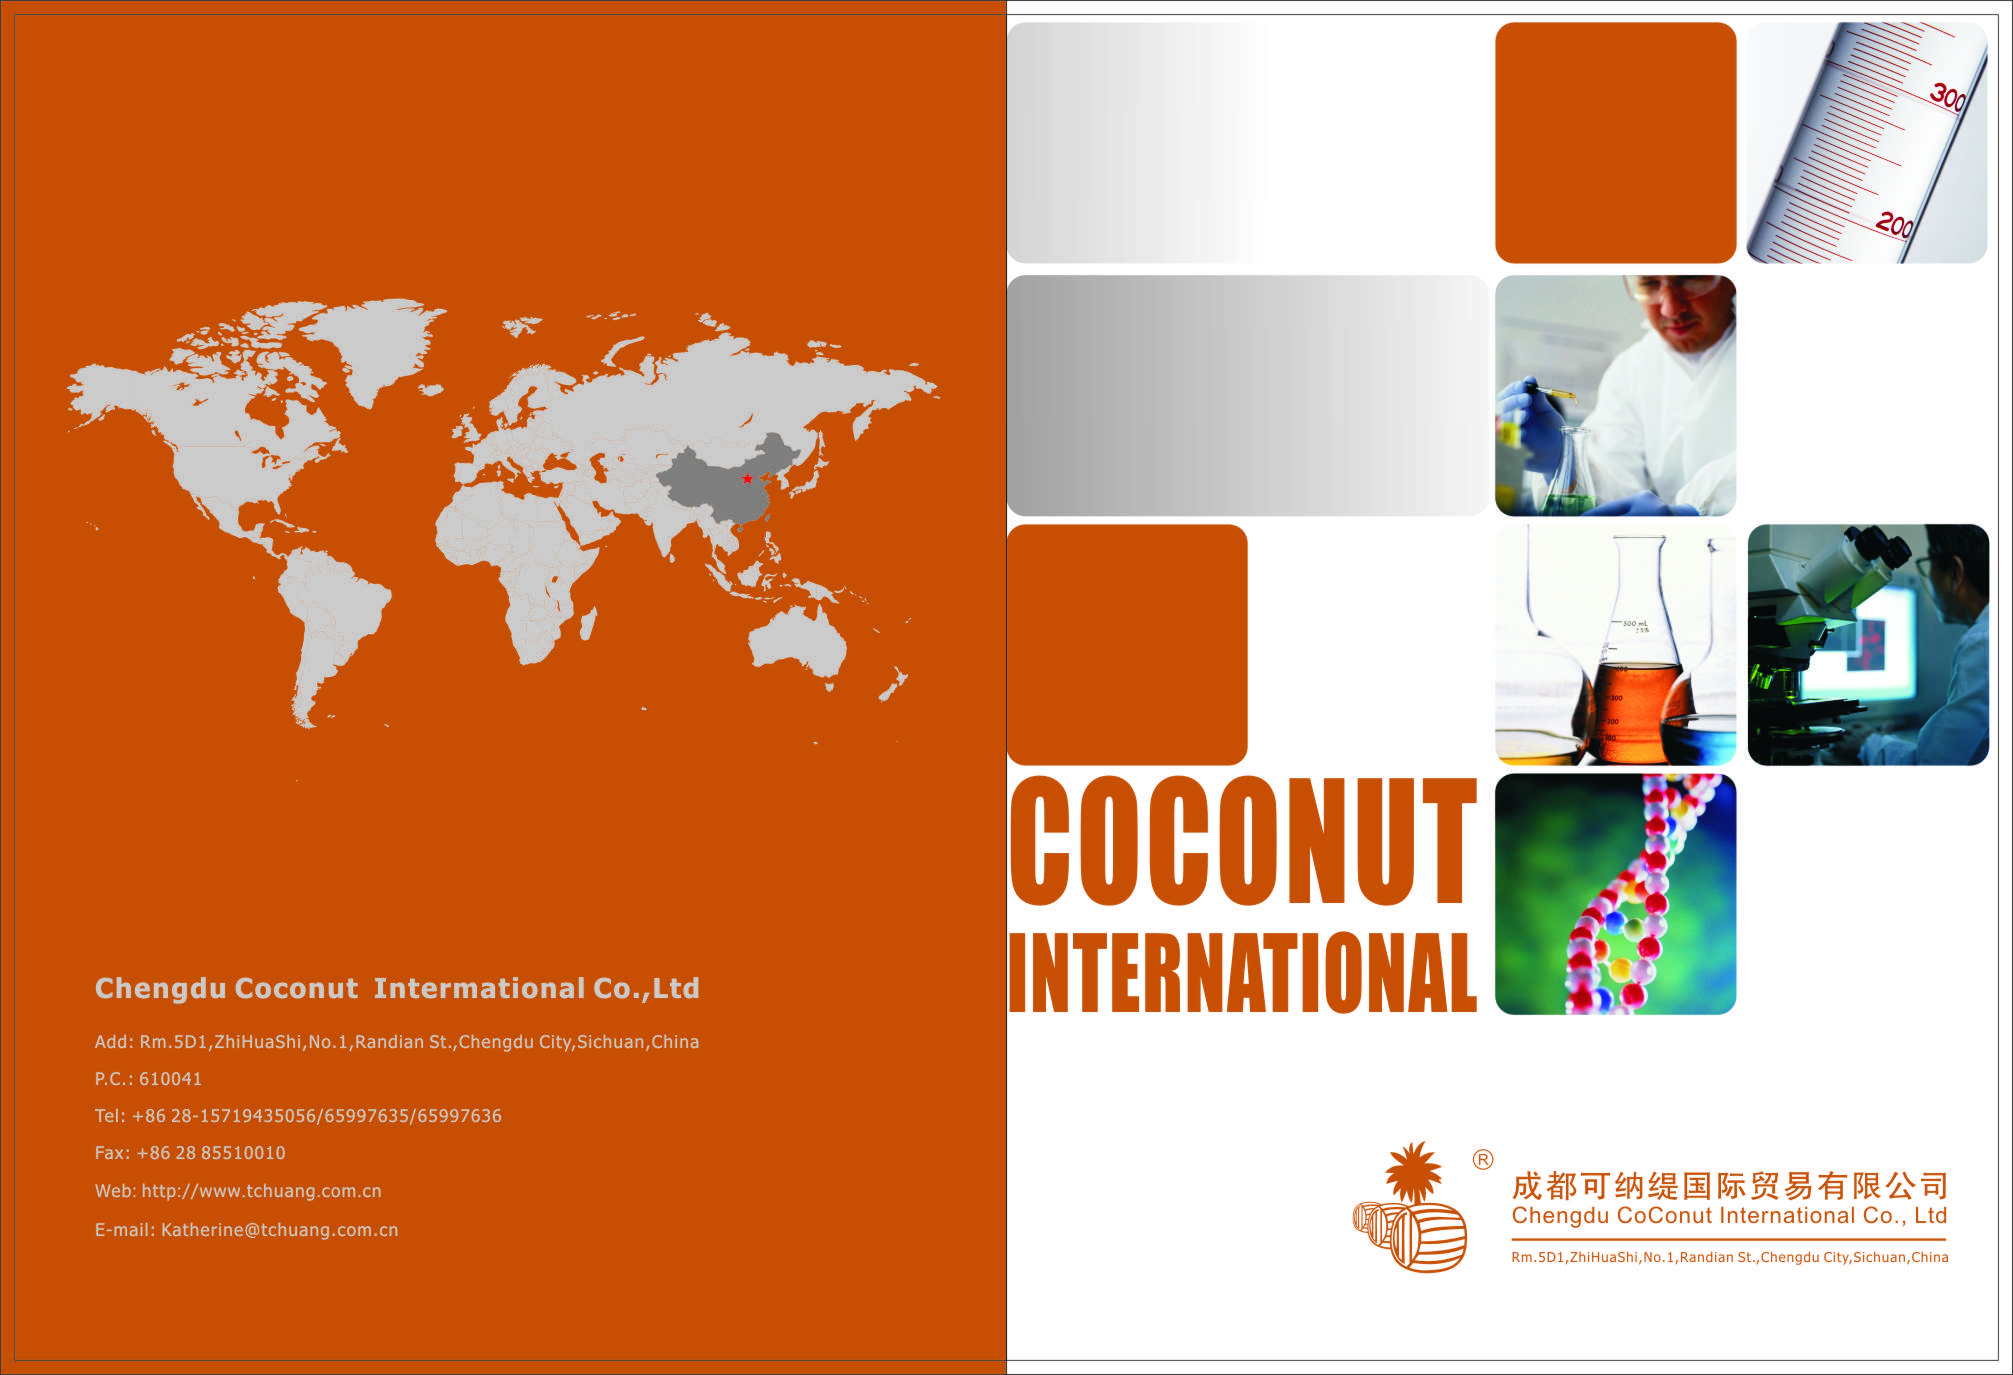 Chengdu Coconut International Co., Ltd logo